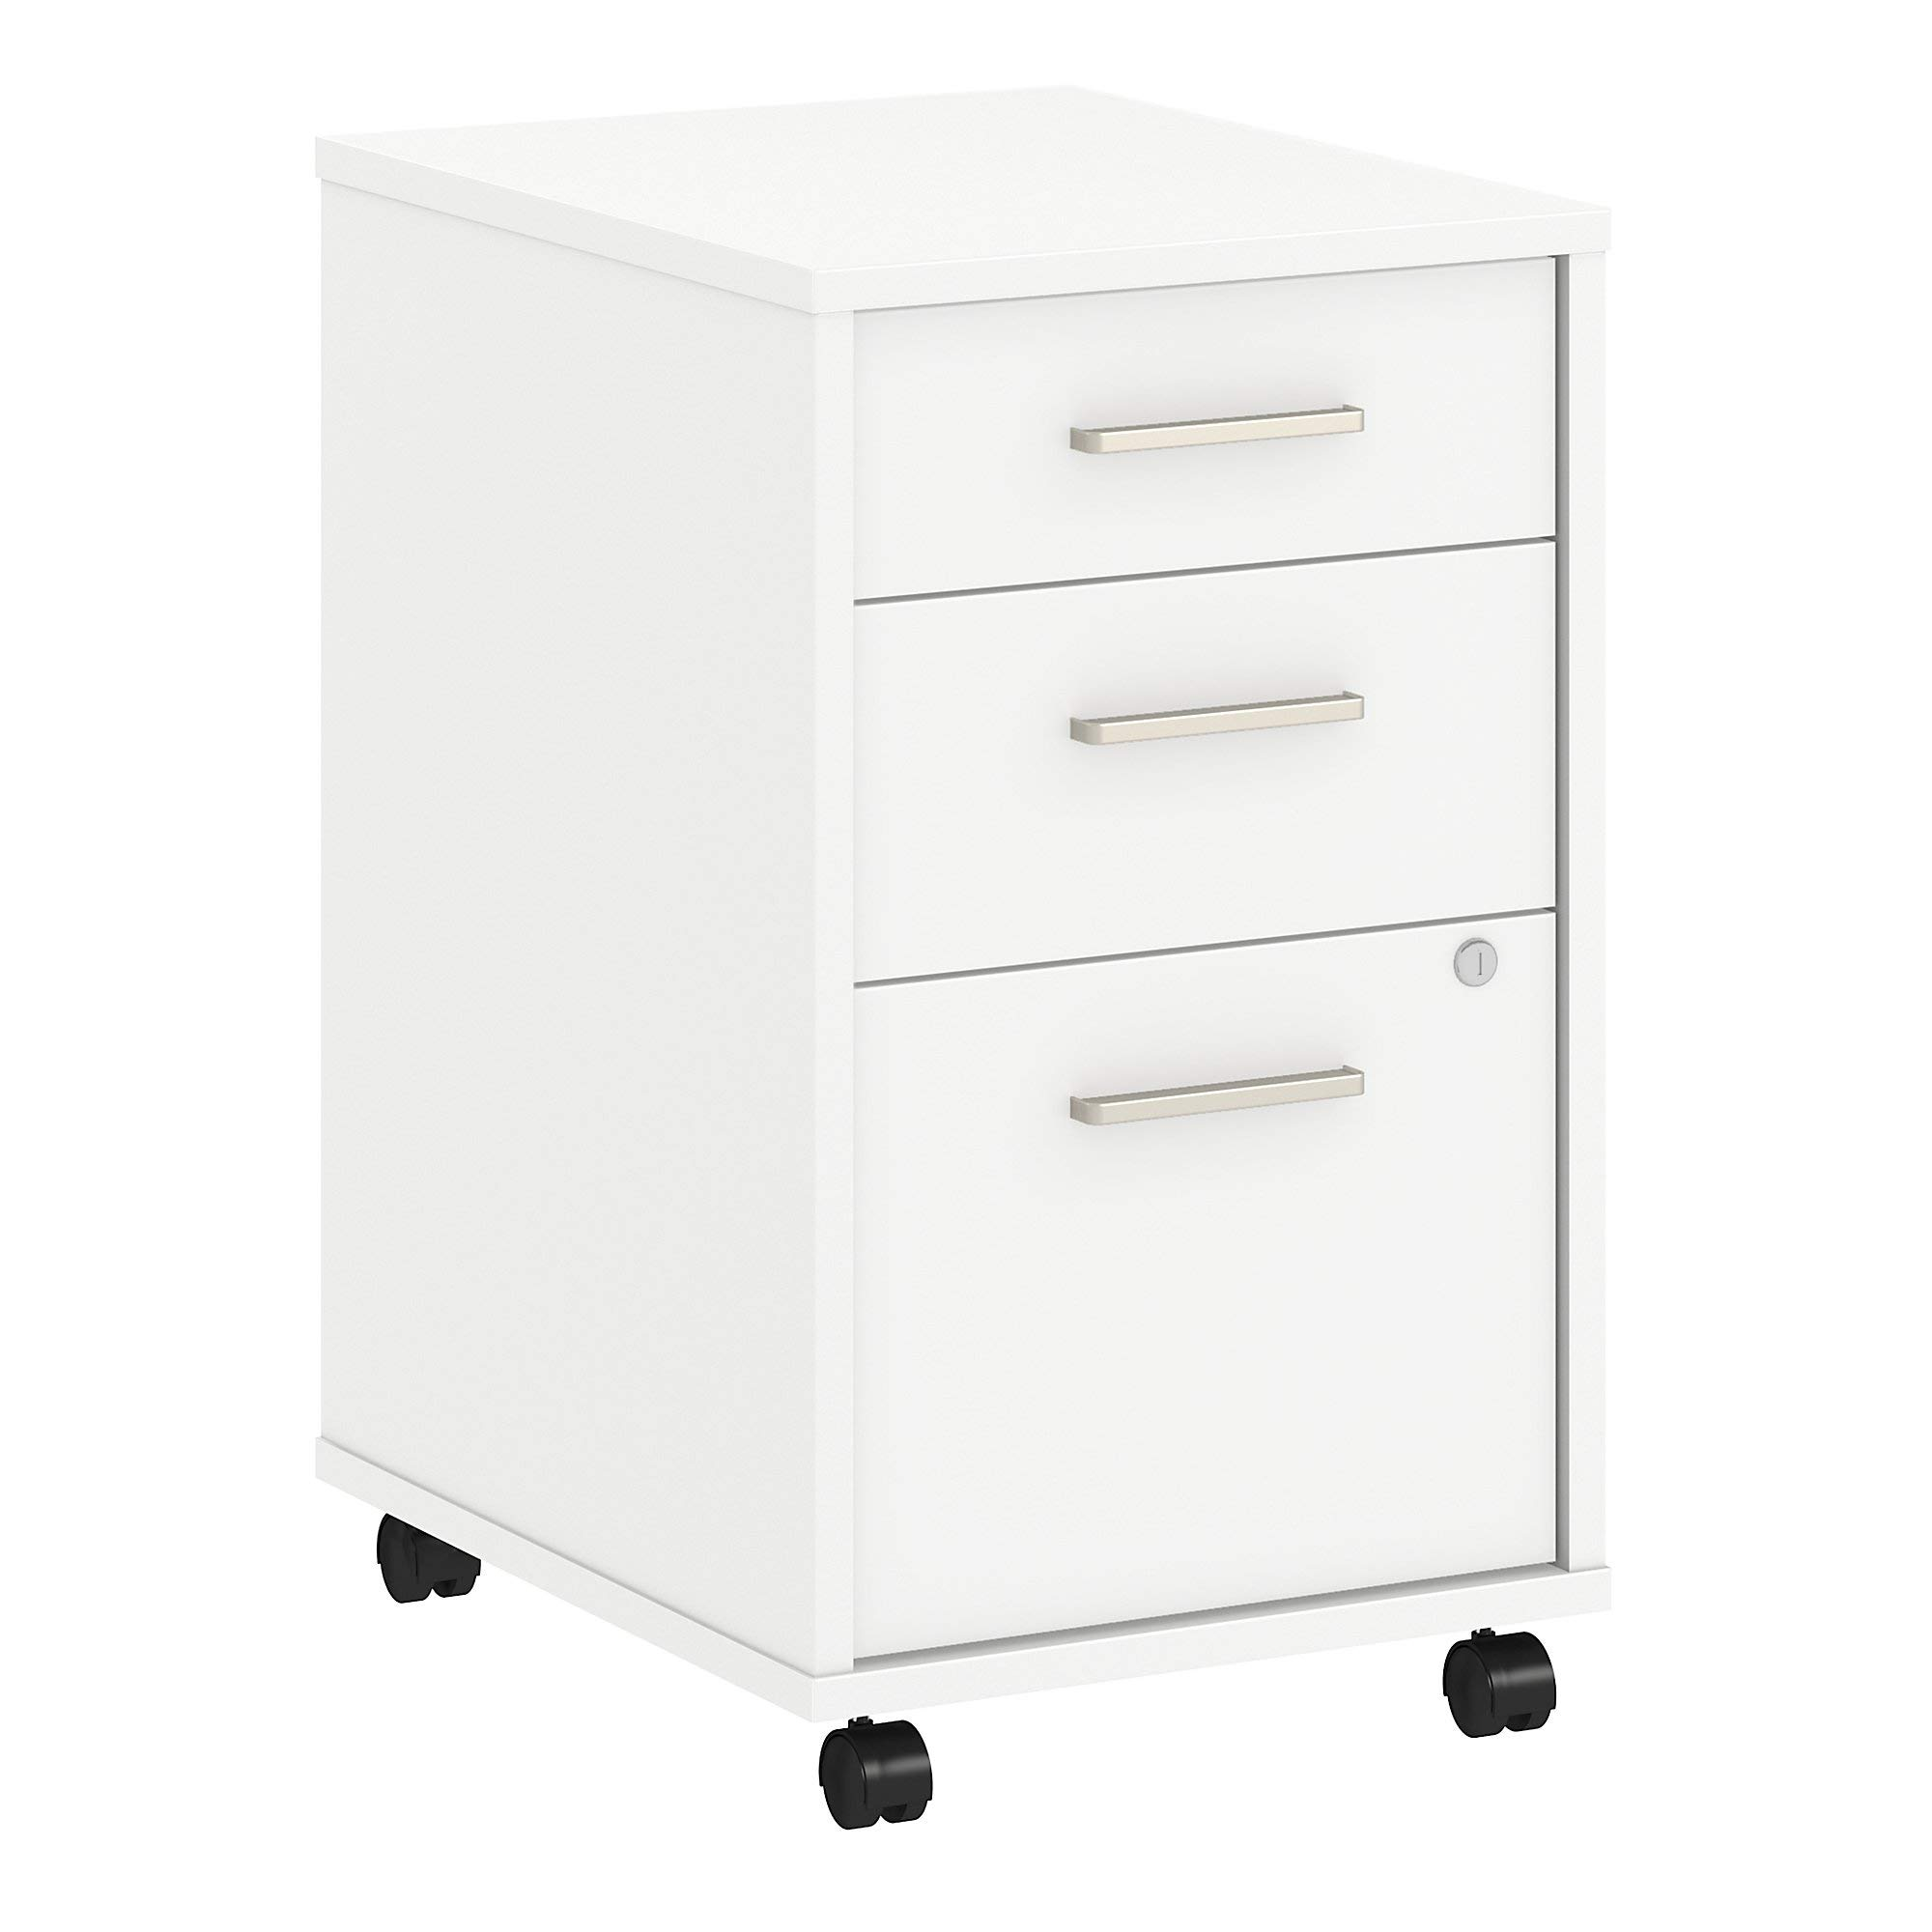 Office by kathy ireland Method 3 Drawer Mobile File Cabinet in White by Kathy Ireland Office